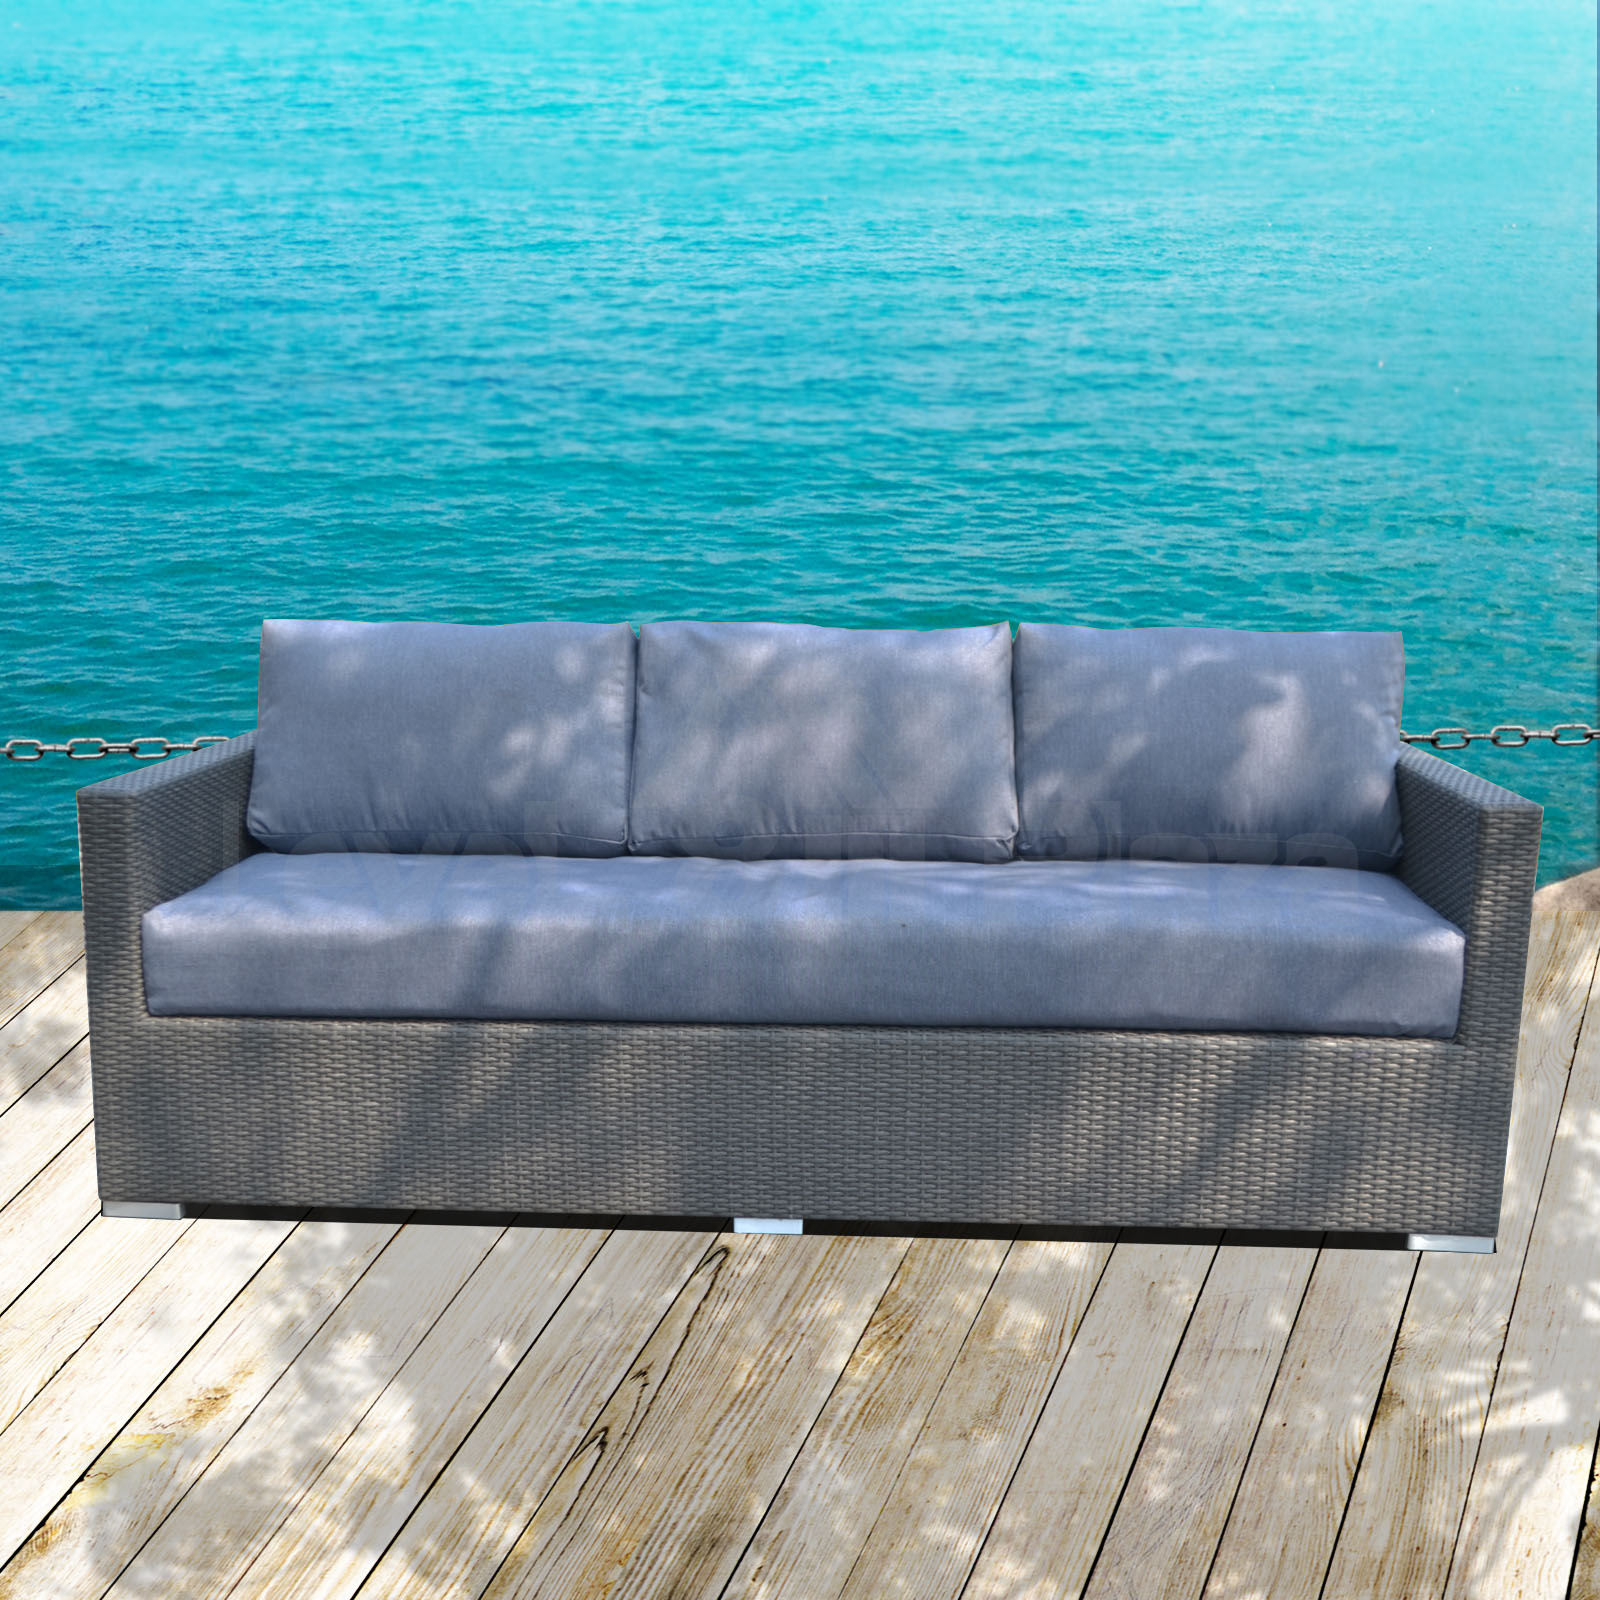 Patio balcony wicker furniture outdoor 3 seater lounge for Outdoor furniture 3 seater